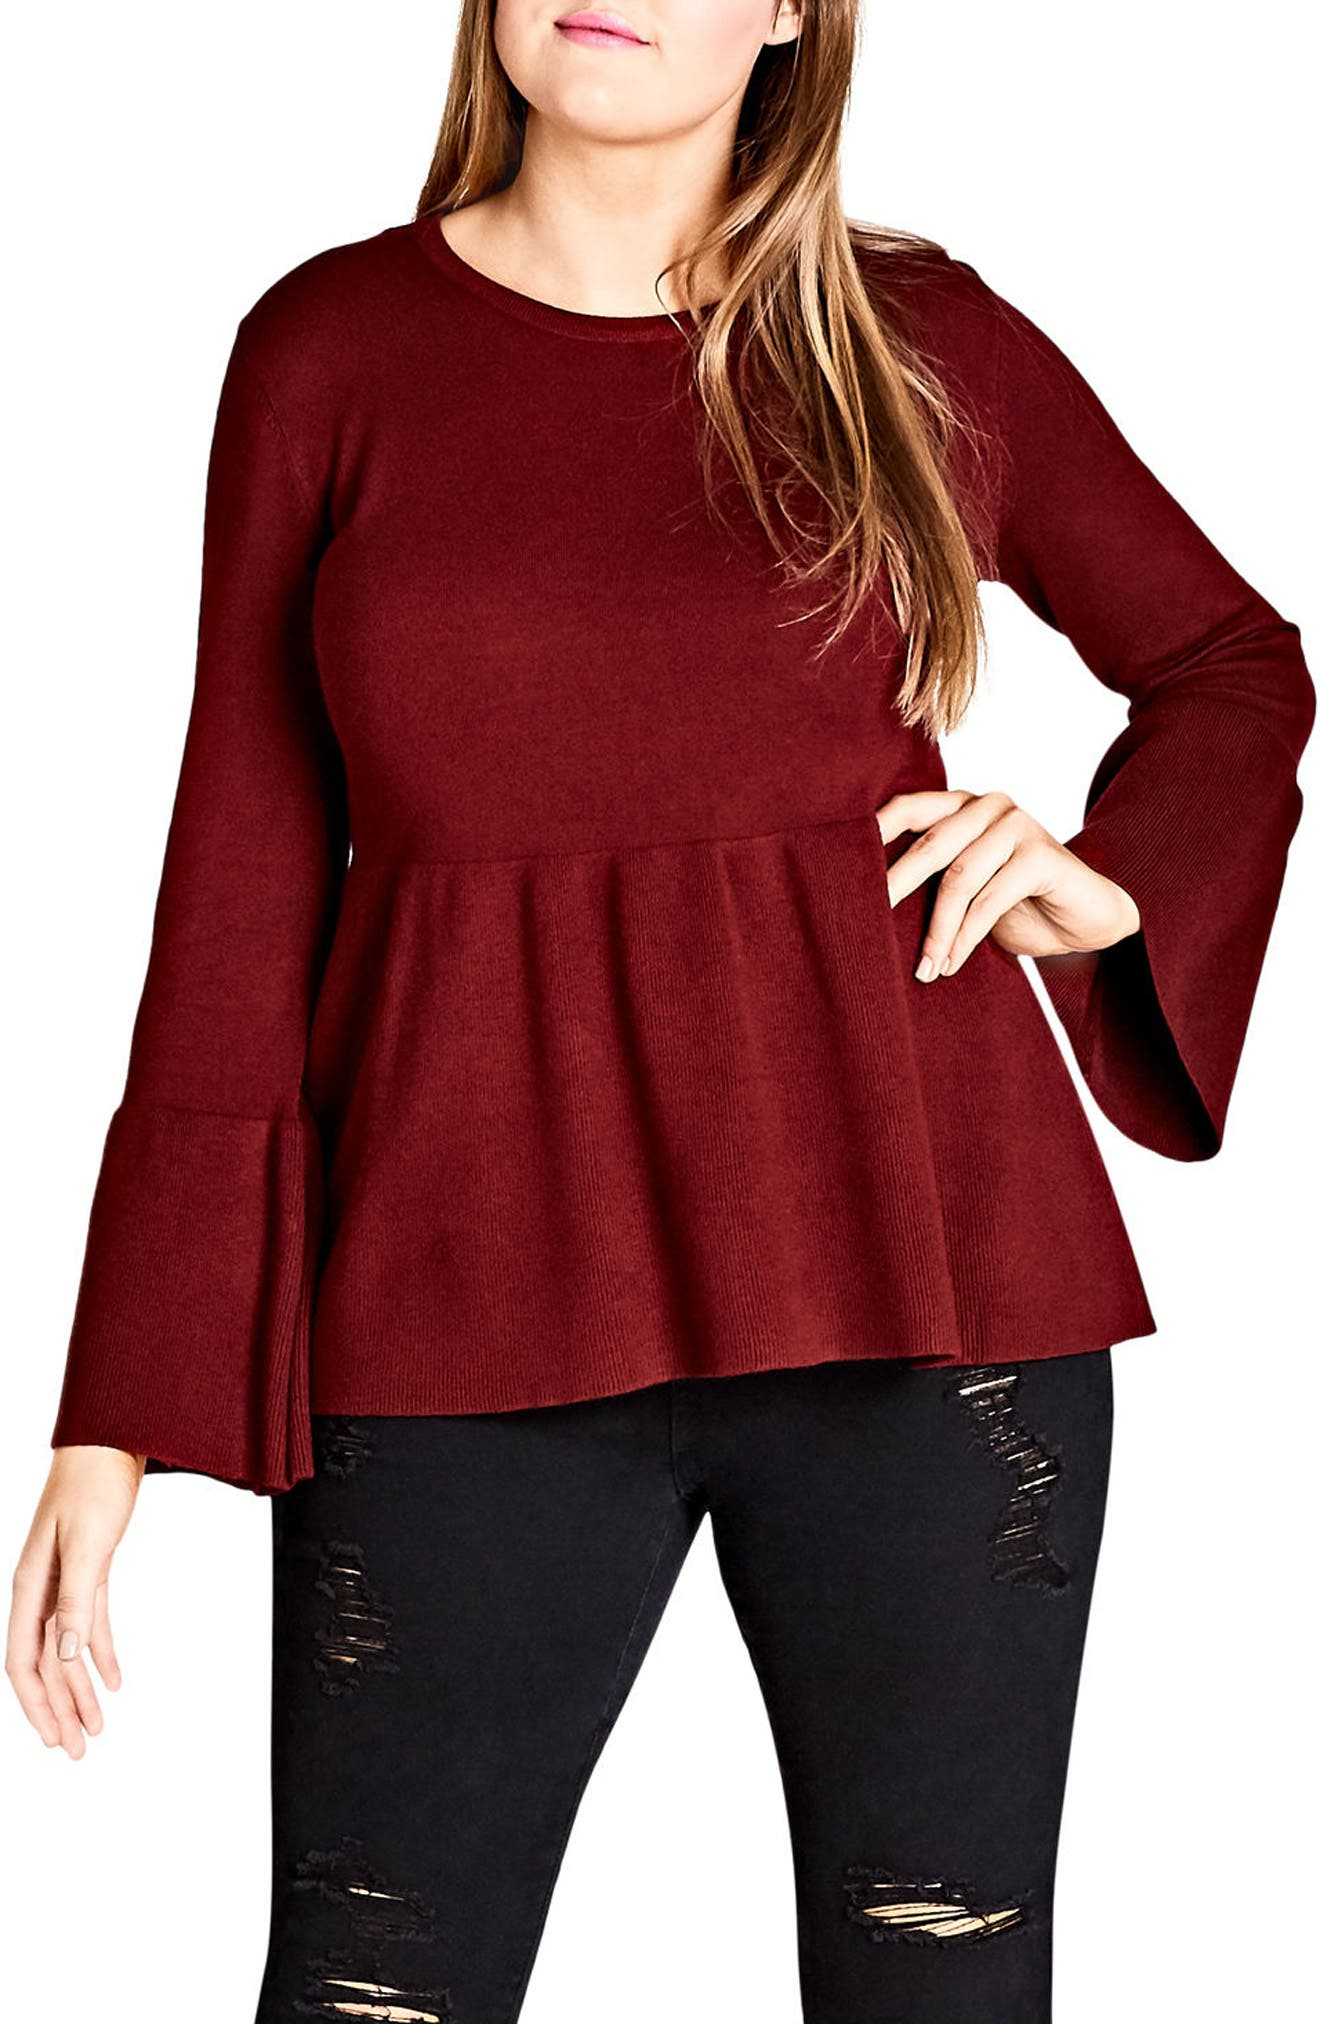 Main Image - City Chic Bell Sleeve Peplum Sweater (Plus Size)